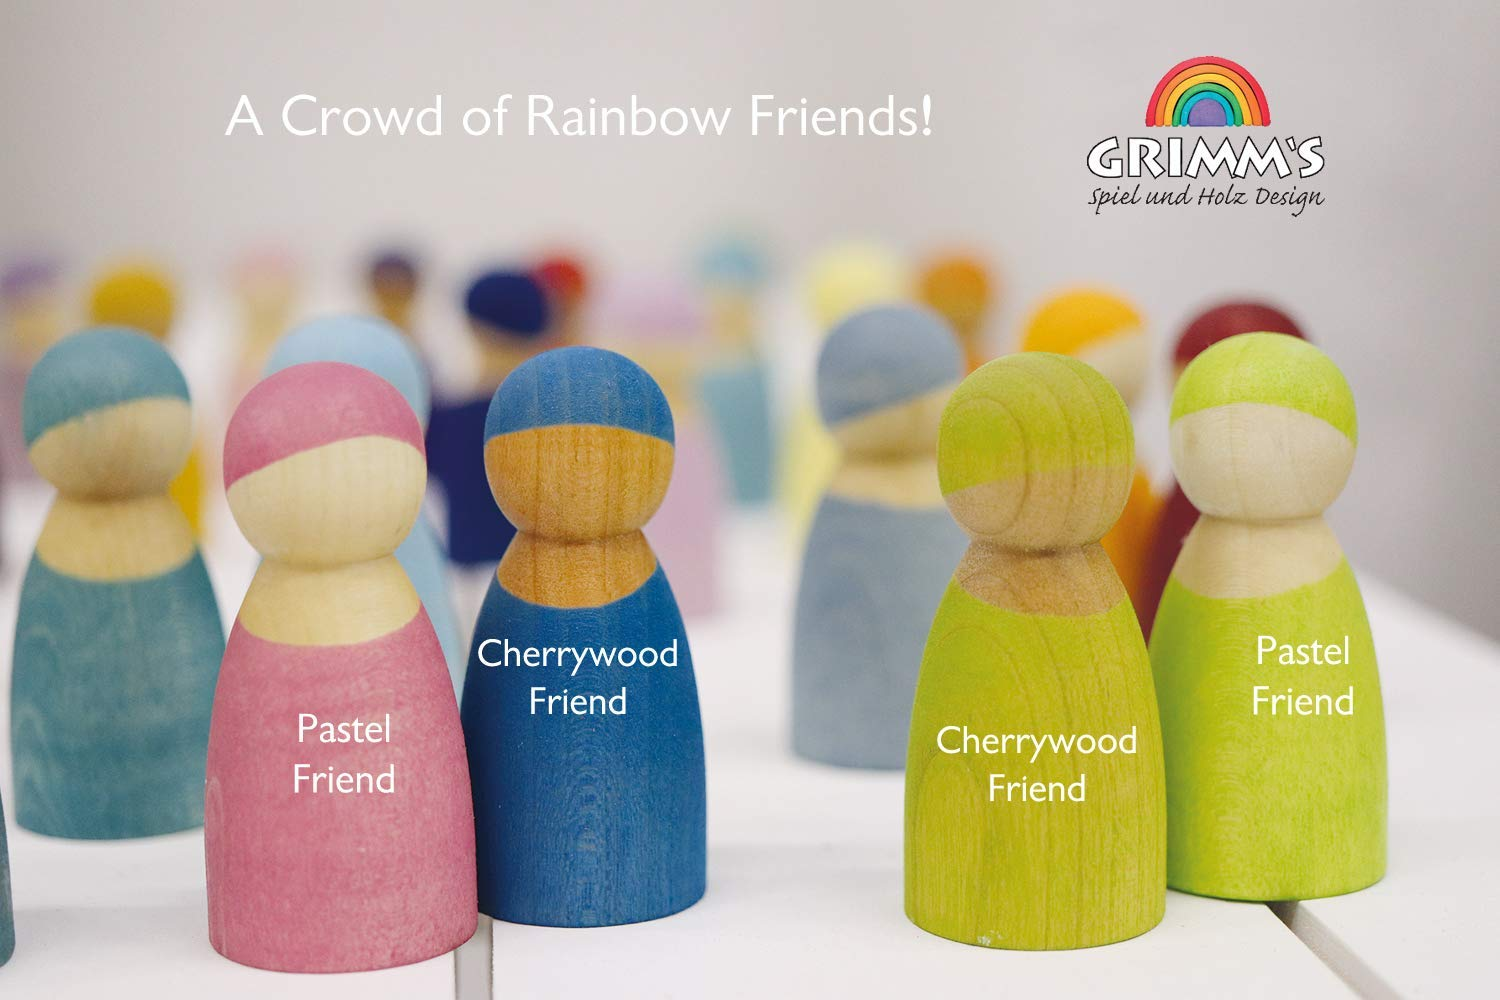 Cherry Wood Special Edition Grimms 12 Rainbow Friends